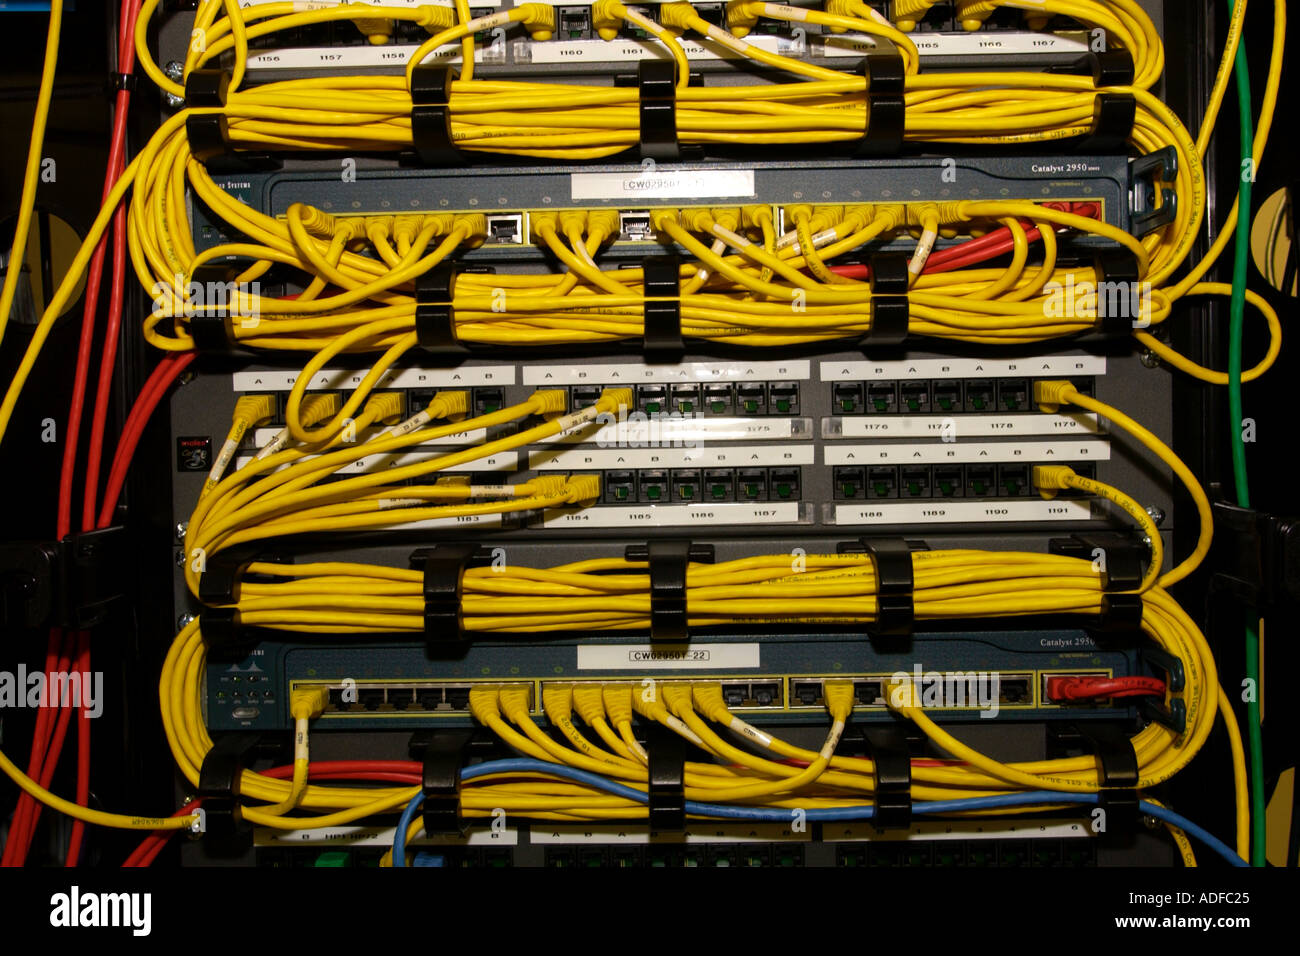 Cables in network server cabinet UK - Stock Image & Telecommunications Cabinets Stock Photos u0026 Telecommunications ...